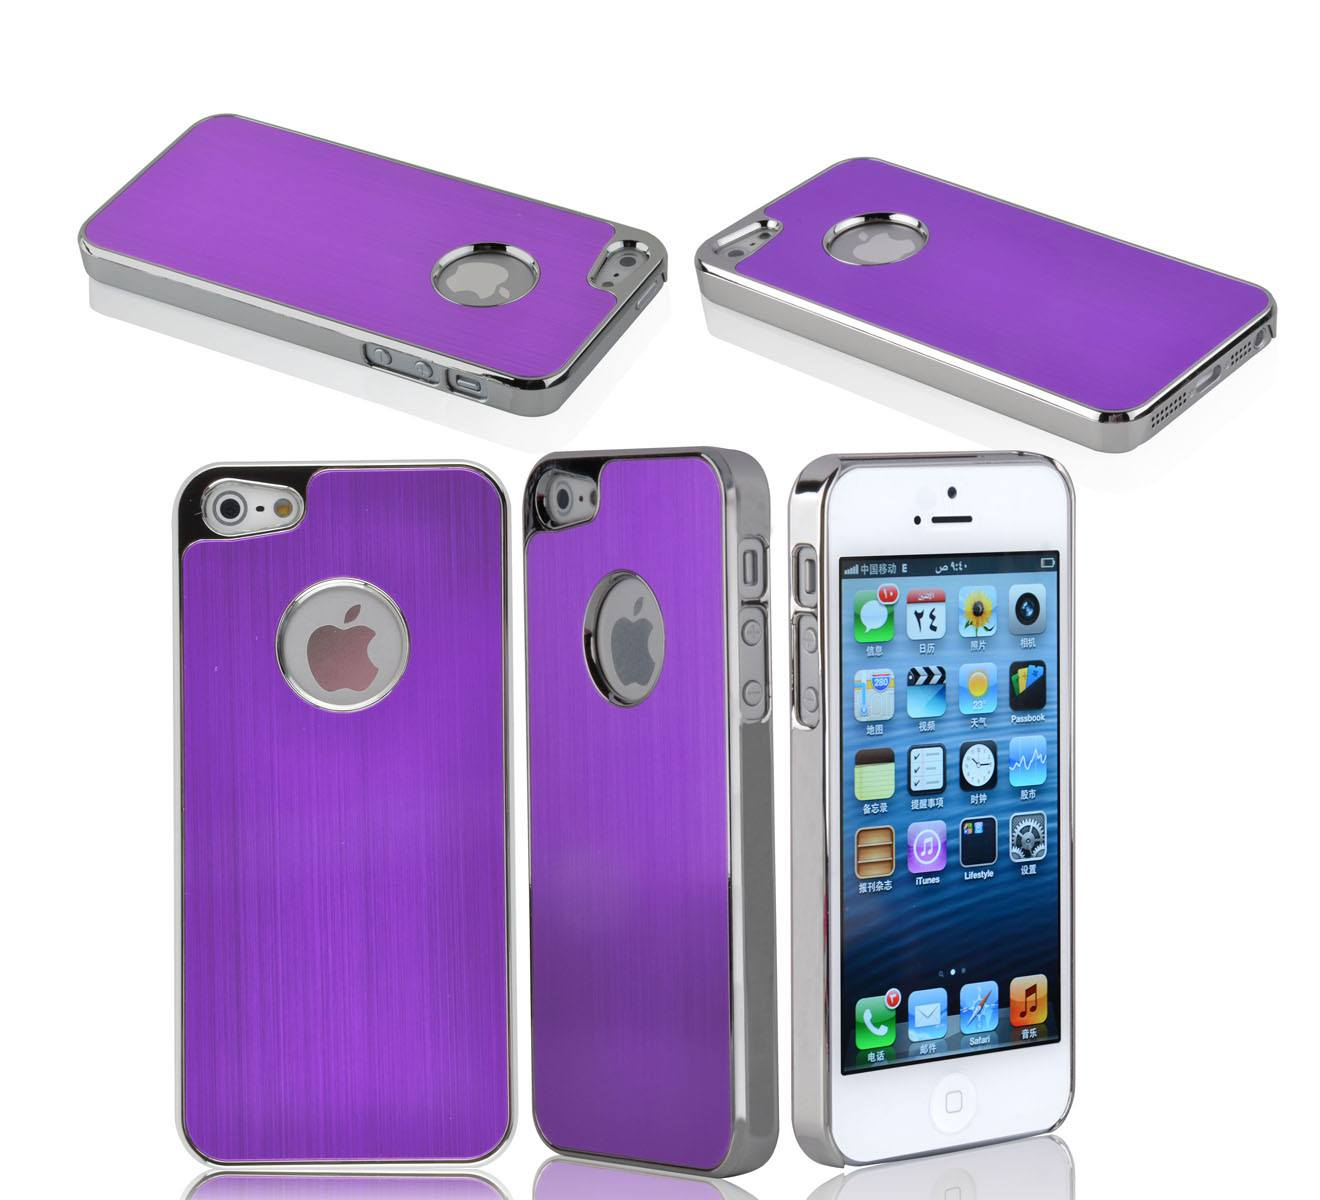 iPhone 5 Premium Brushed Aluminum Case - Purple